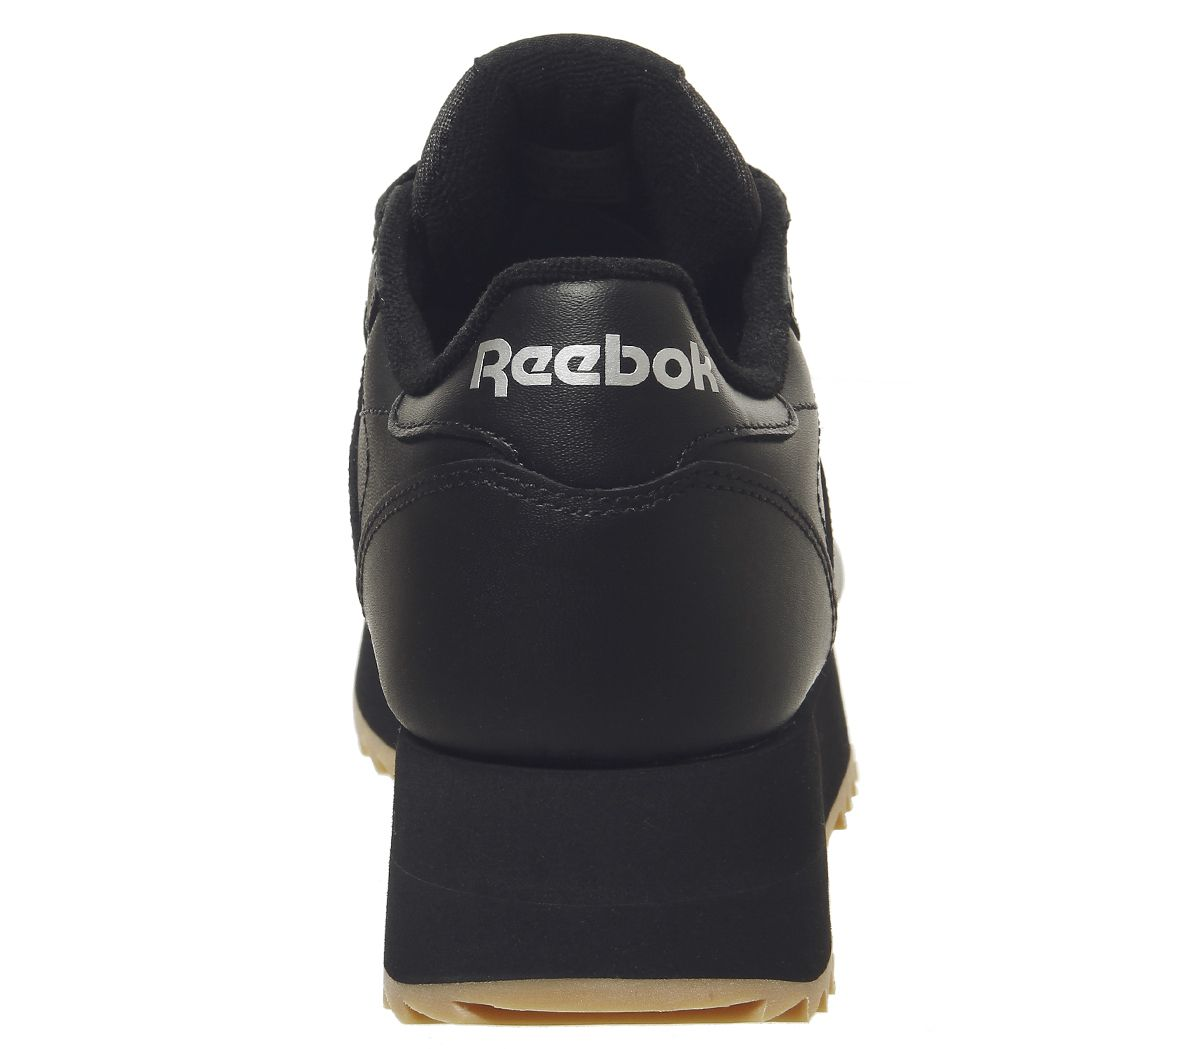 21cc66bed7624 Sentinel Womens Reebok Classic Leather Double Trainers Black Gum Silver  Metallic Trainers